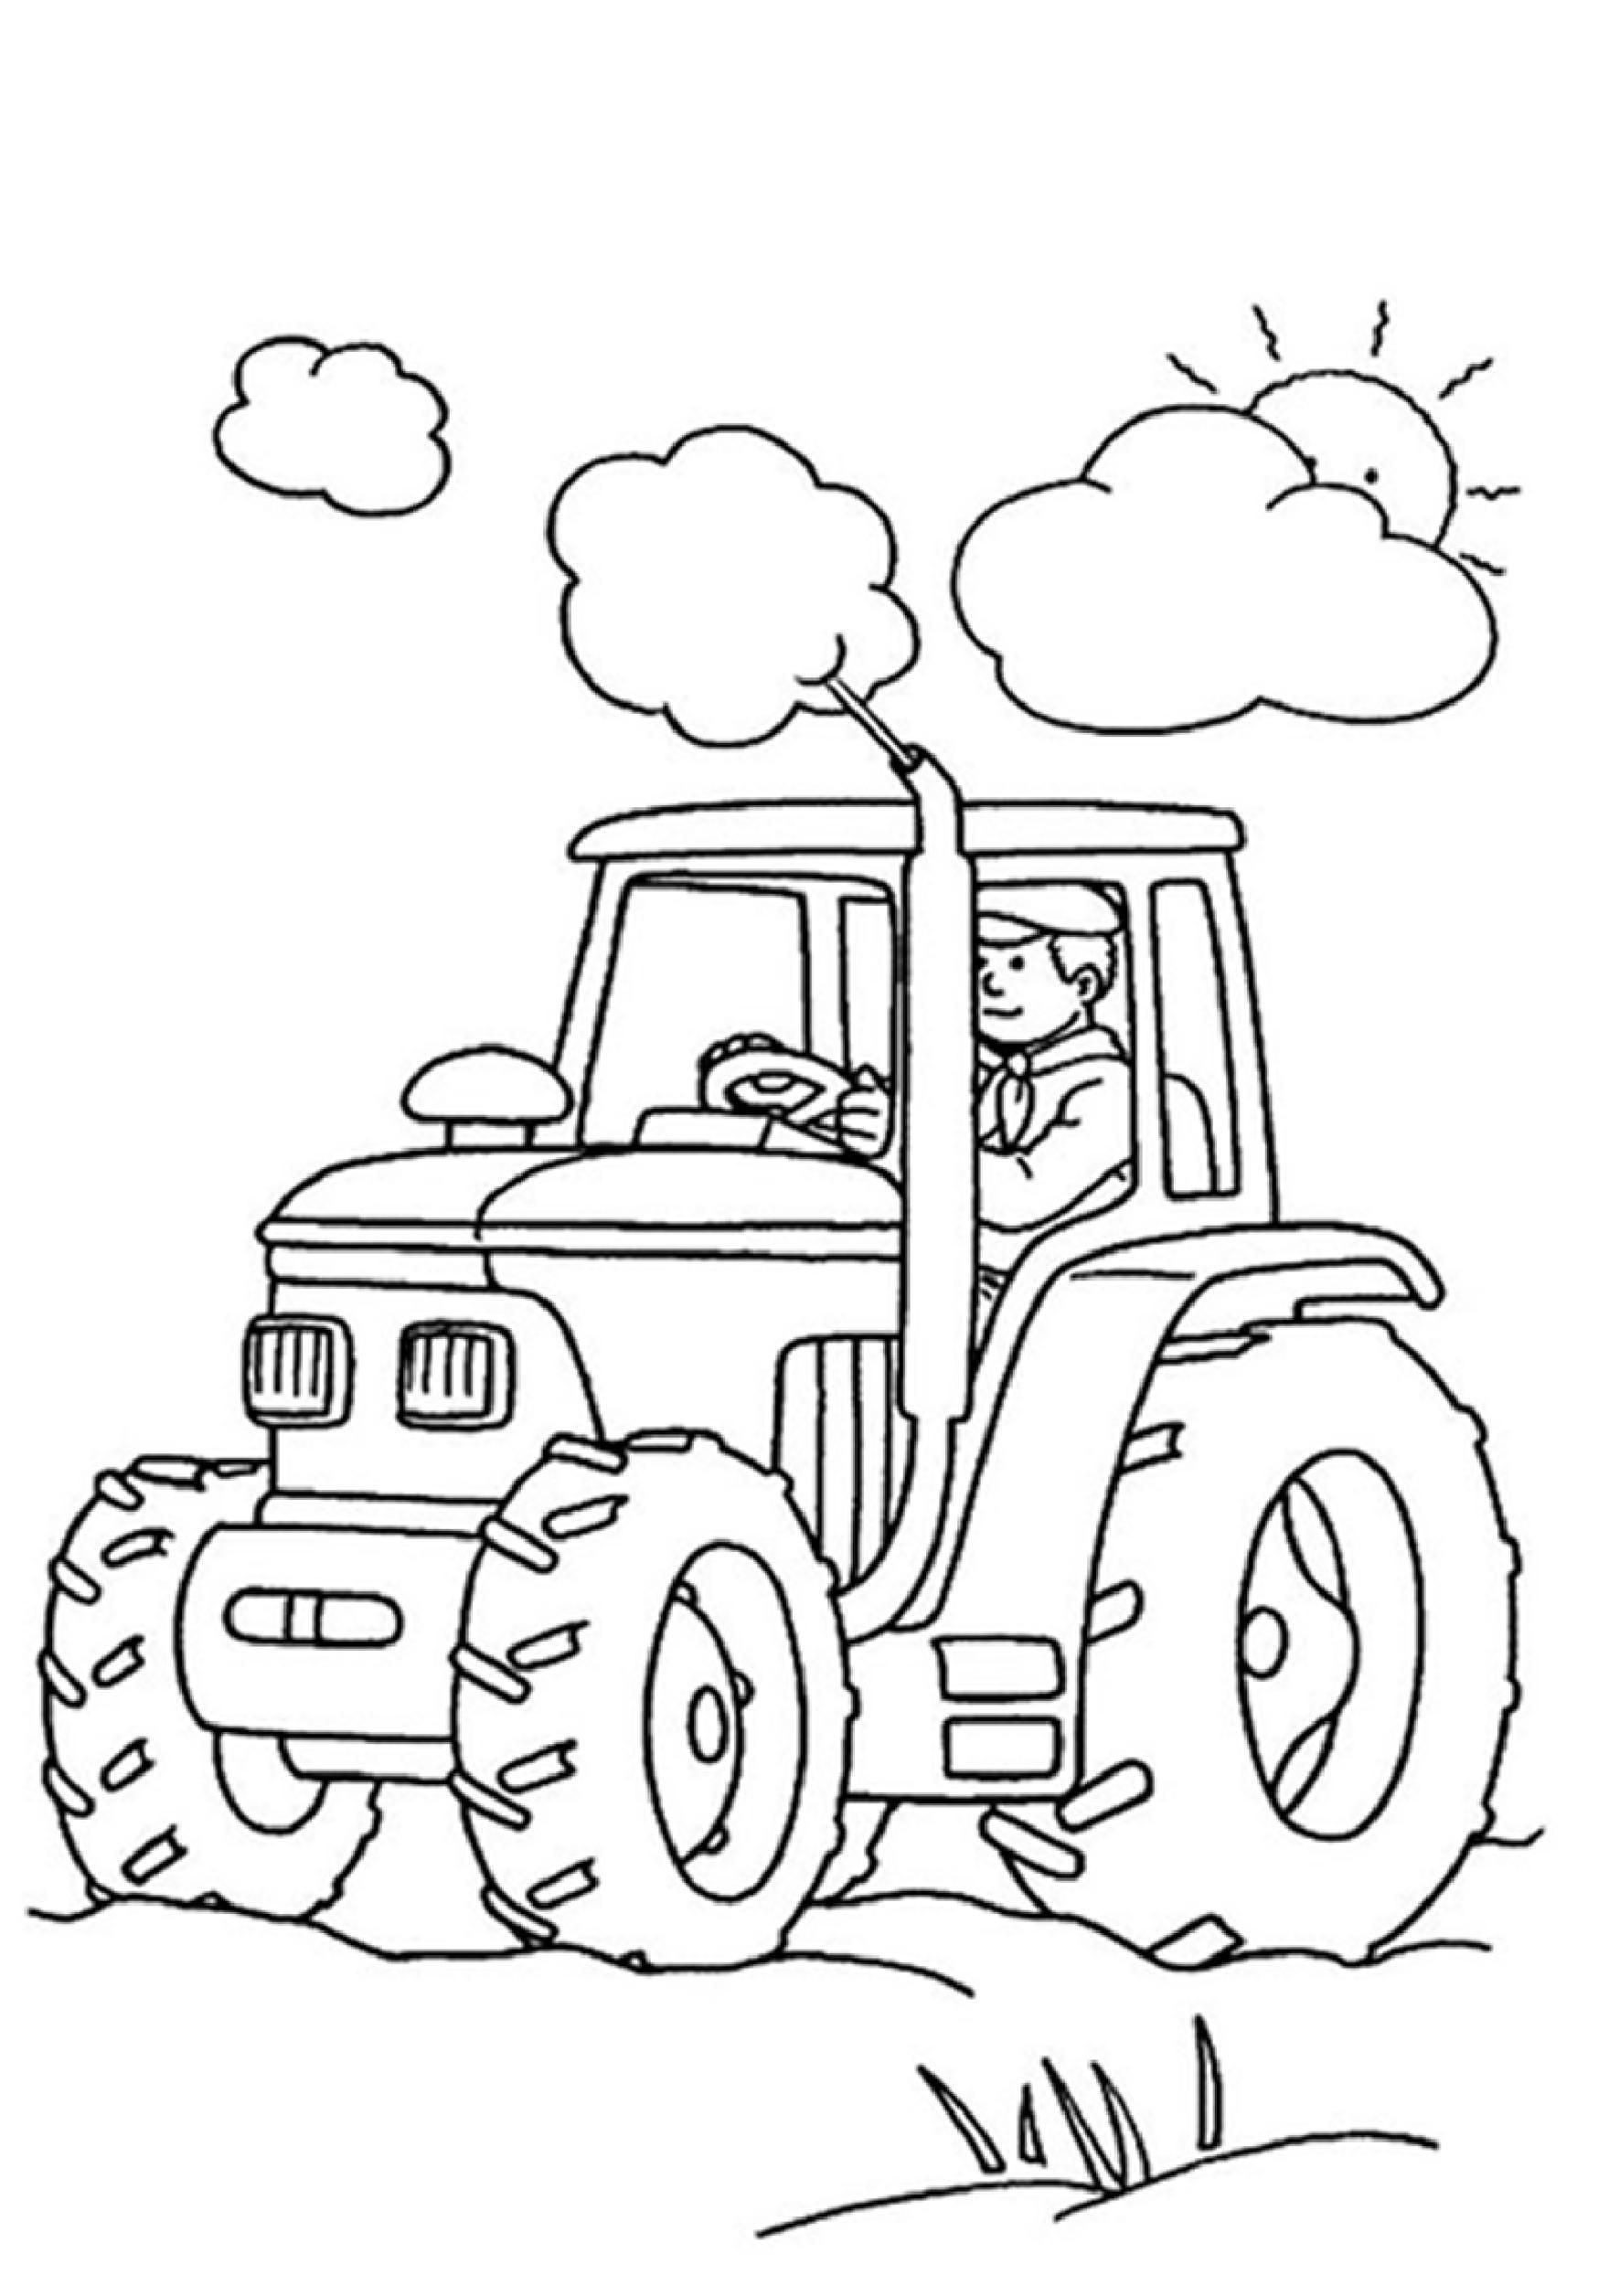 16 Free Colouring Pictures For Children in 2020 Tractor